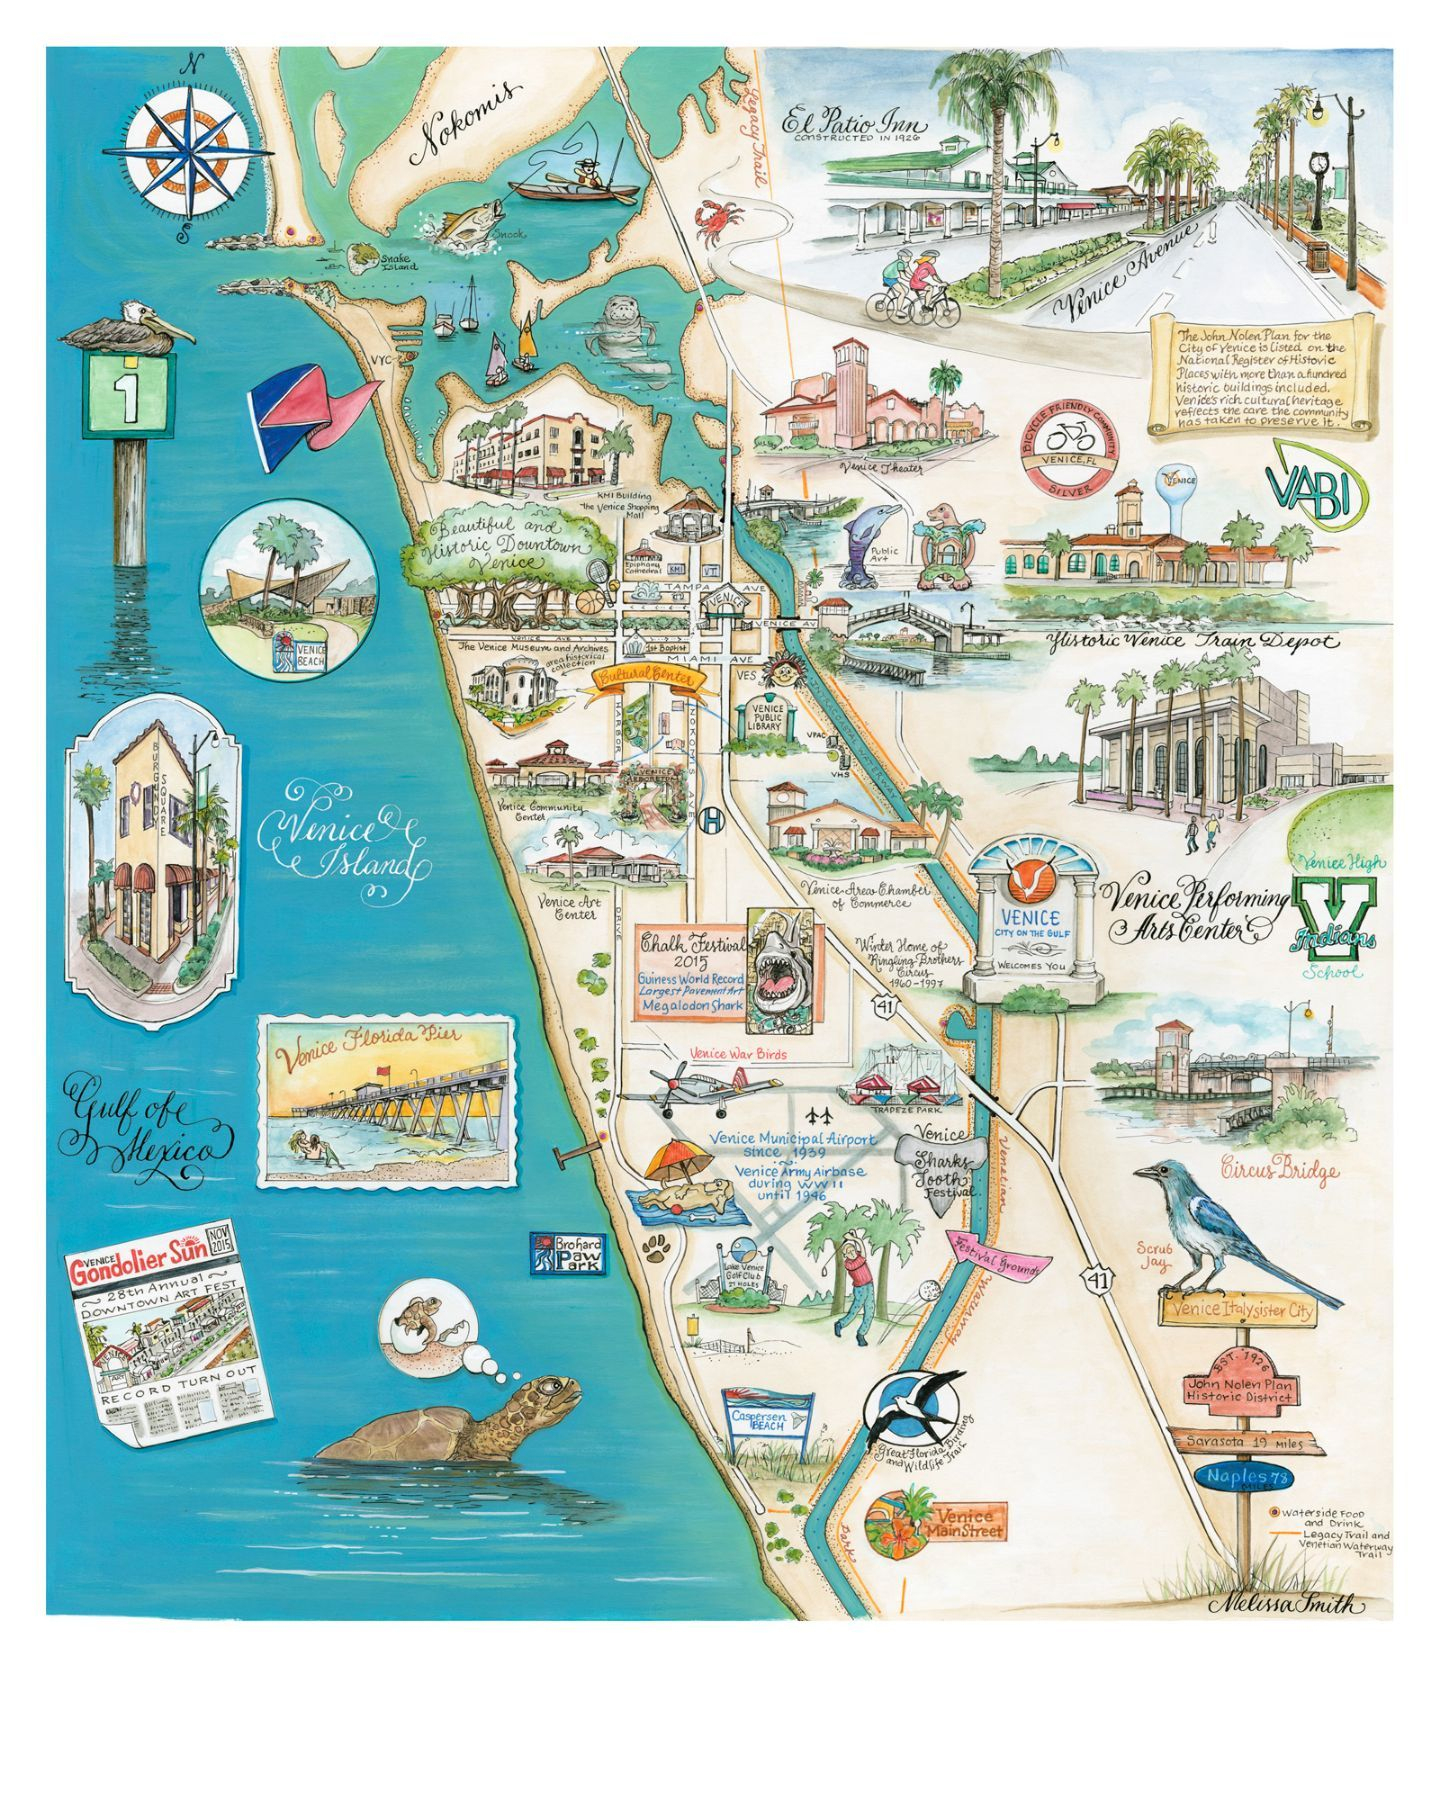 Venice, Florida Map - This Map Is One Of The Prettiest Maps I Have - Venice Beach Florida Map